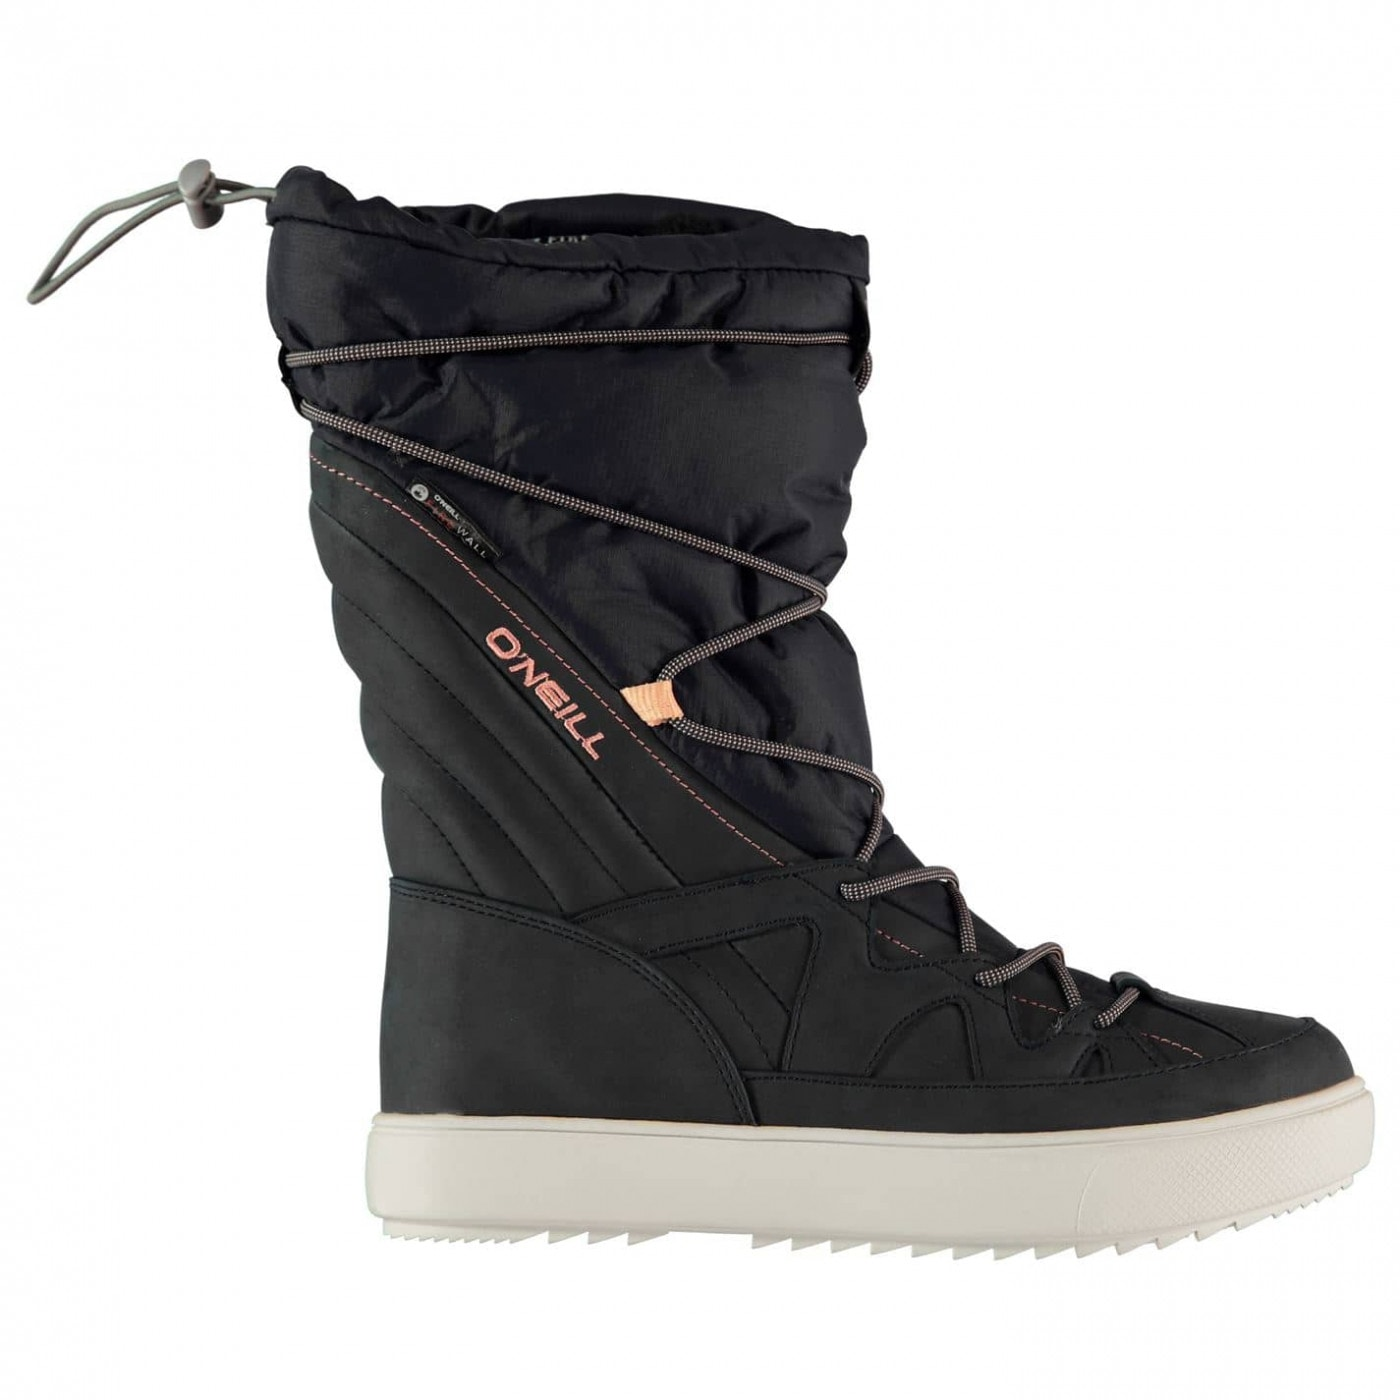 ONeill Montabella Ladies Snow Boots